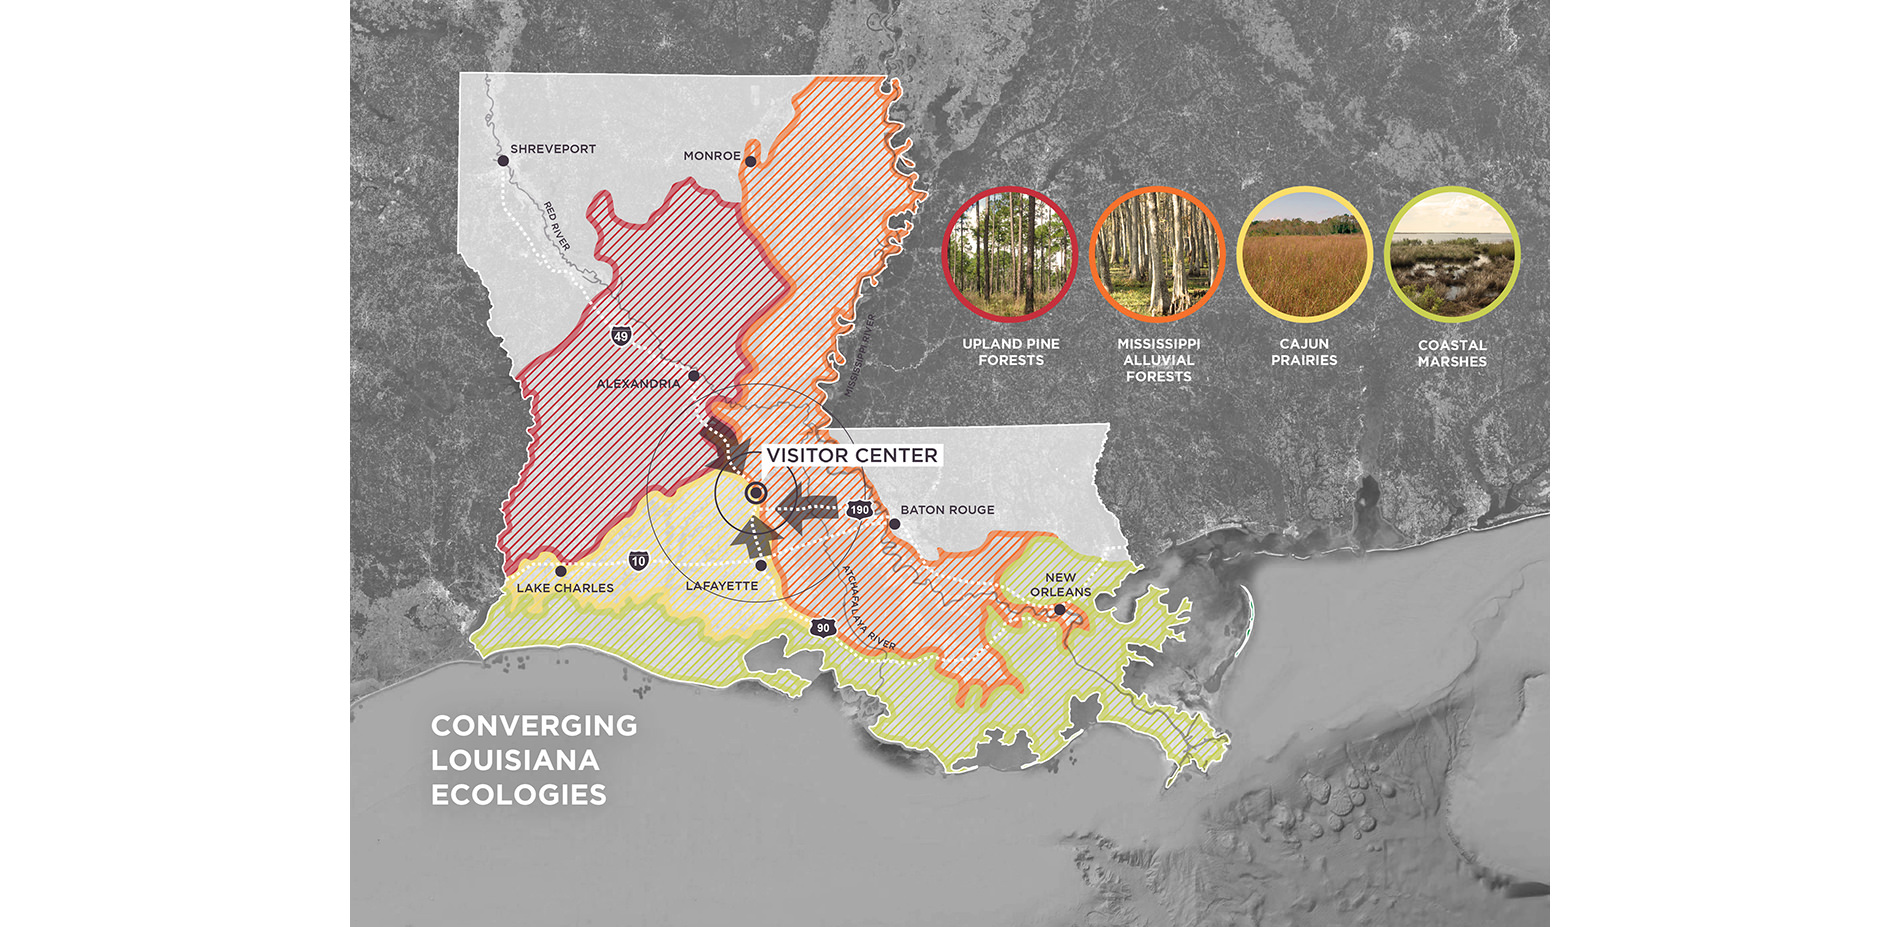 Louisiana Ecologies Map Converging Ecologies as a